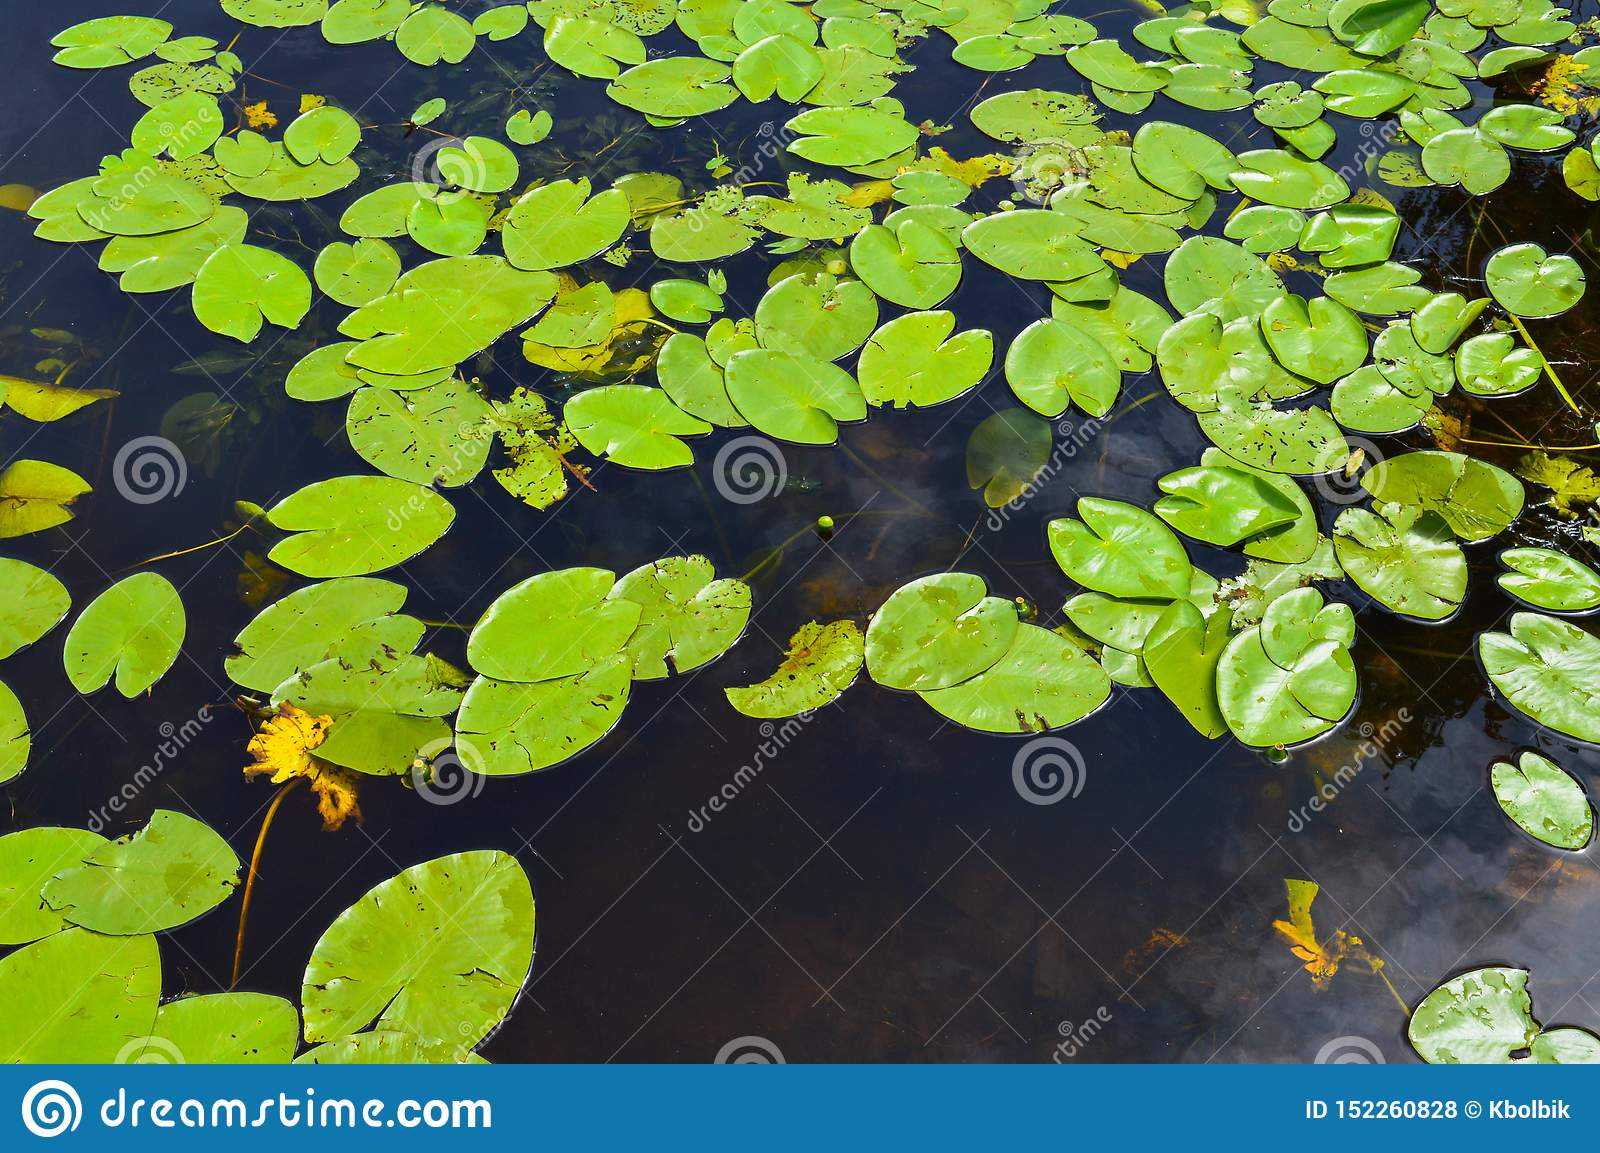 474 Lily Pad Texture Lake Photos Free Royalty Free Stock Photos From Dreamstime